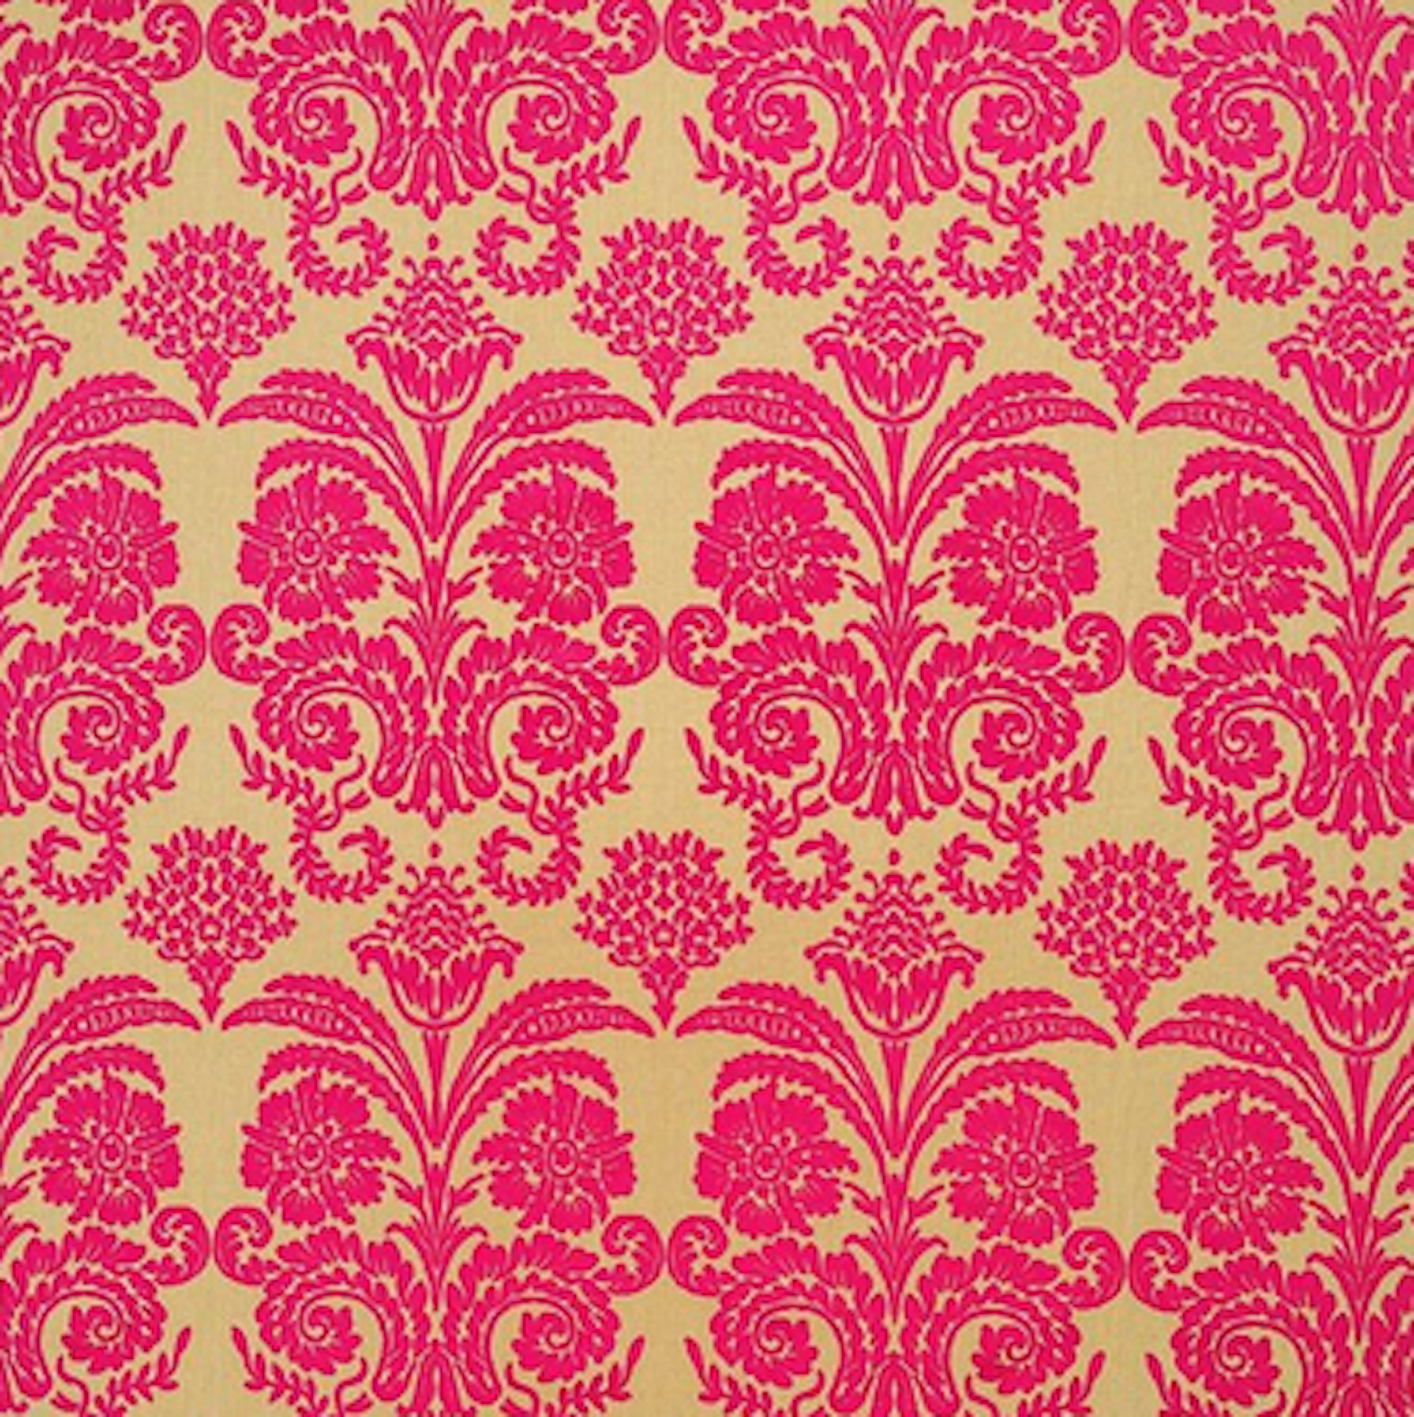 DESIGNERS GUILD FABRIC OMBRIONE CASSIS Fabric - F1171 05